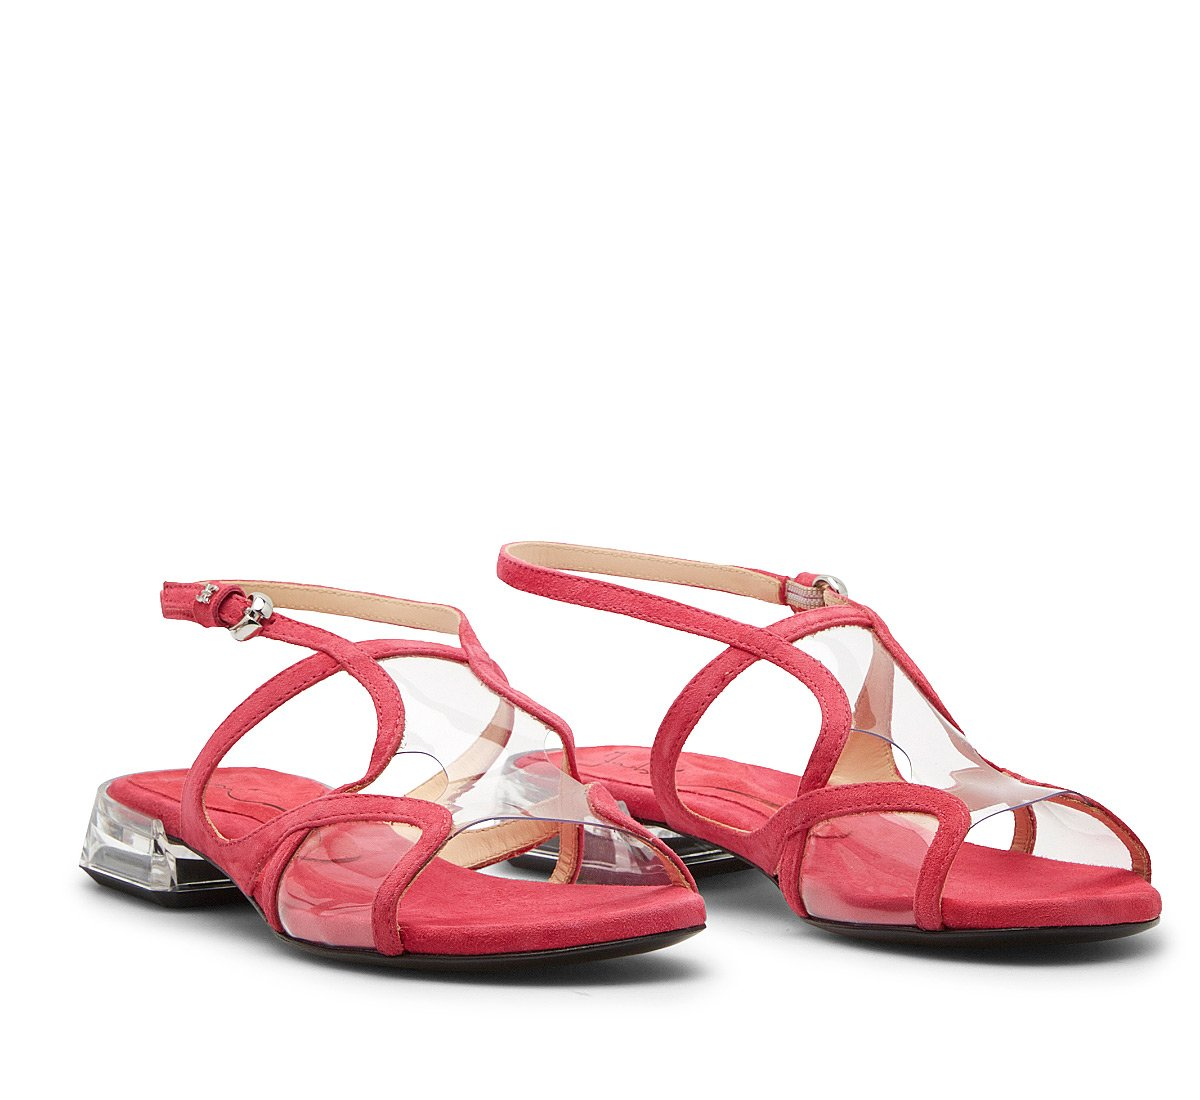 Sandals in patent leather